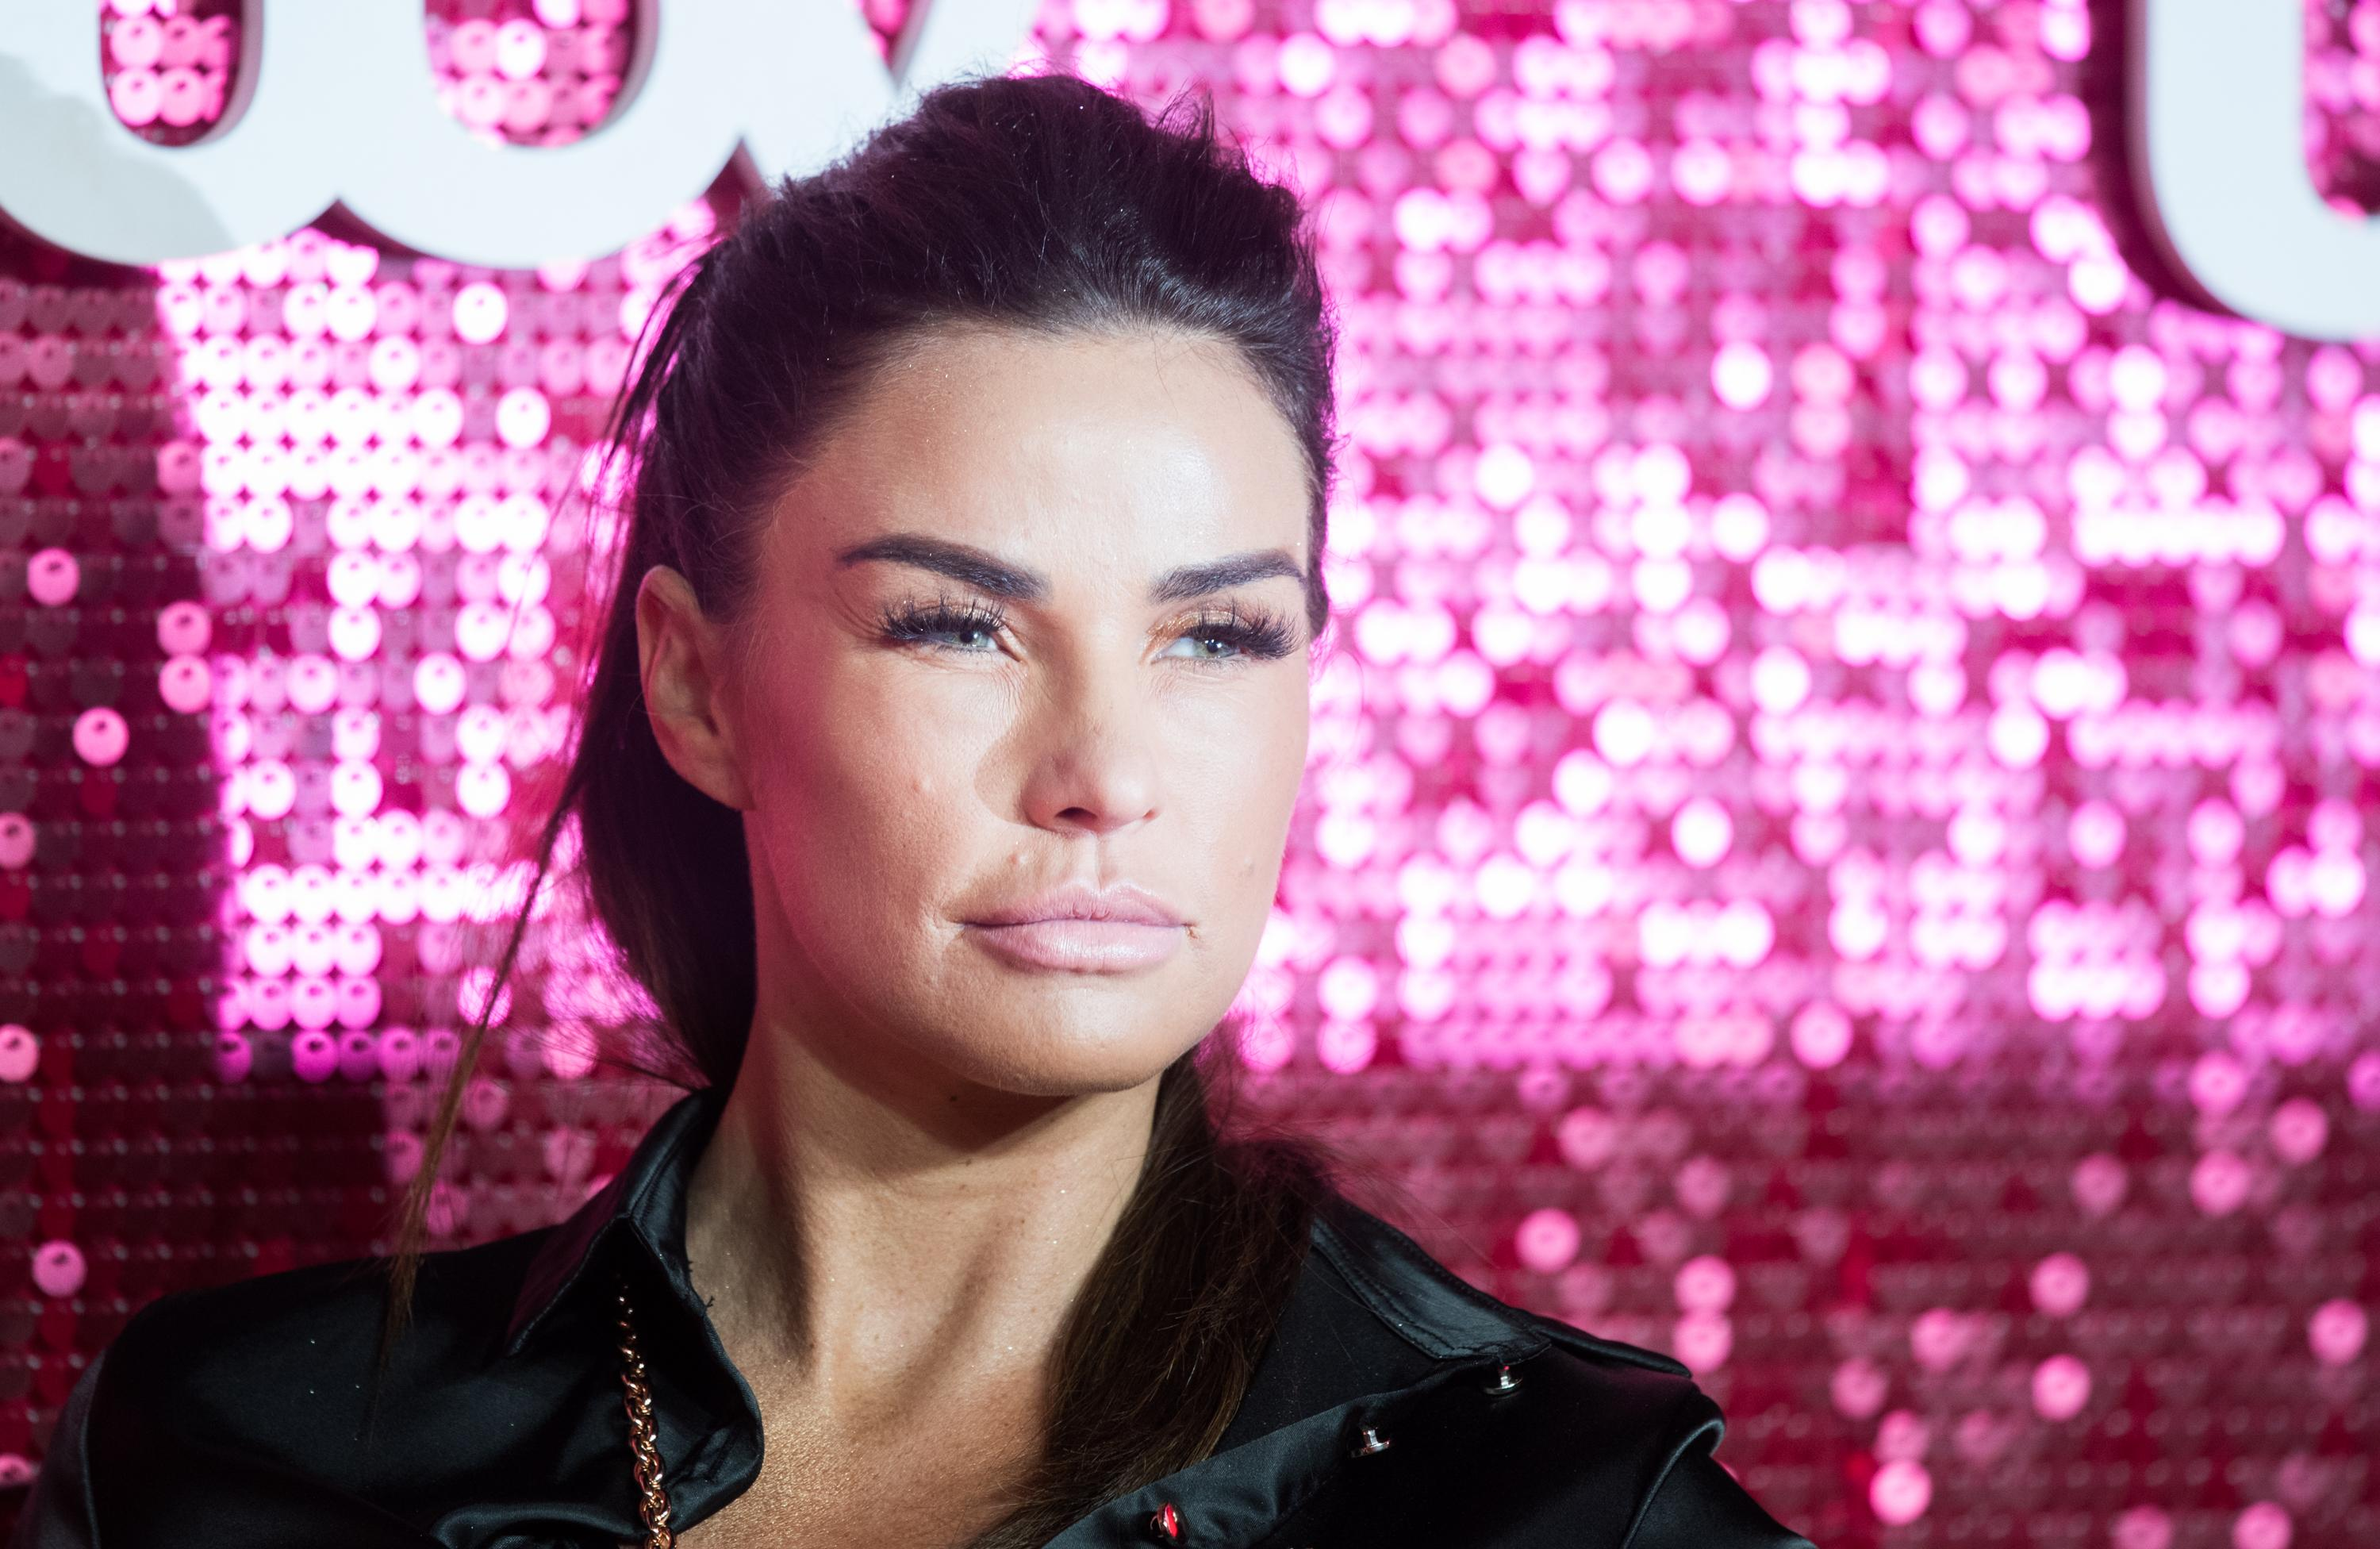 Katie Price returning to music as she records new album